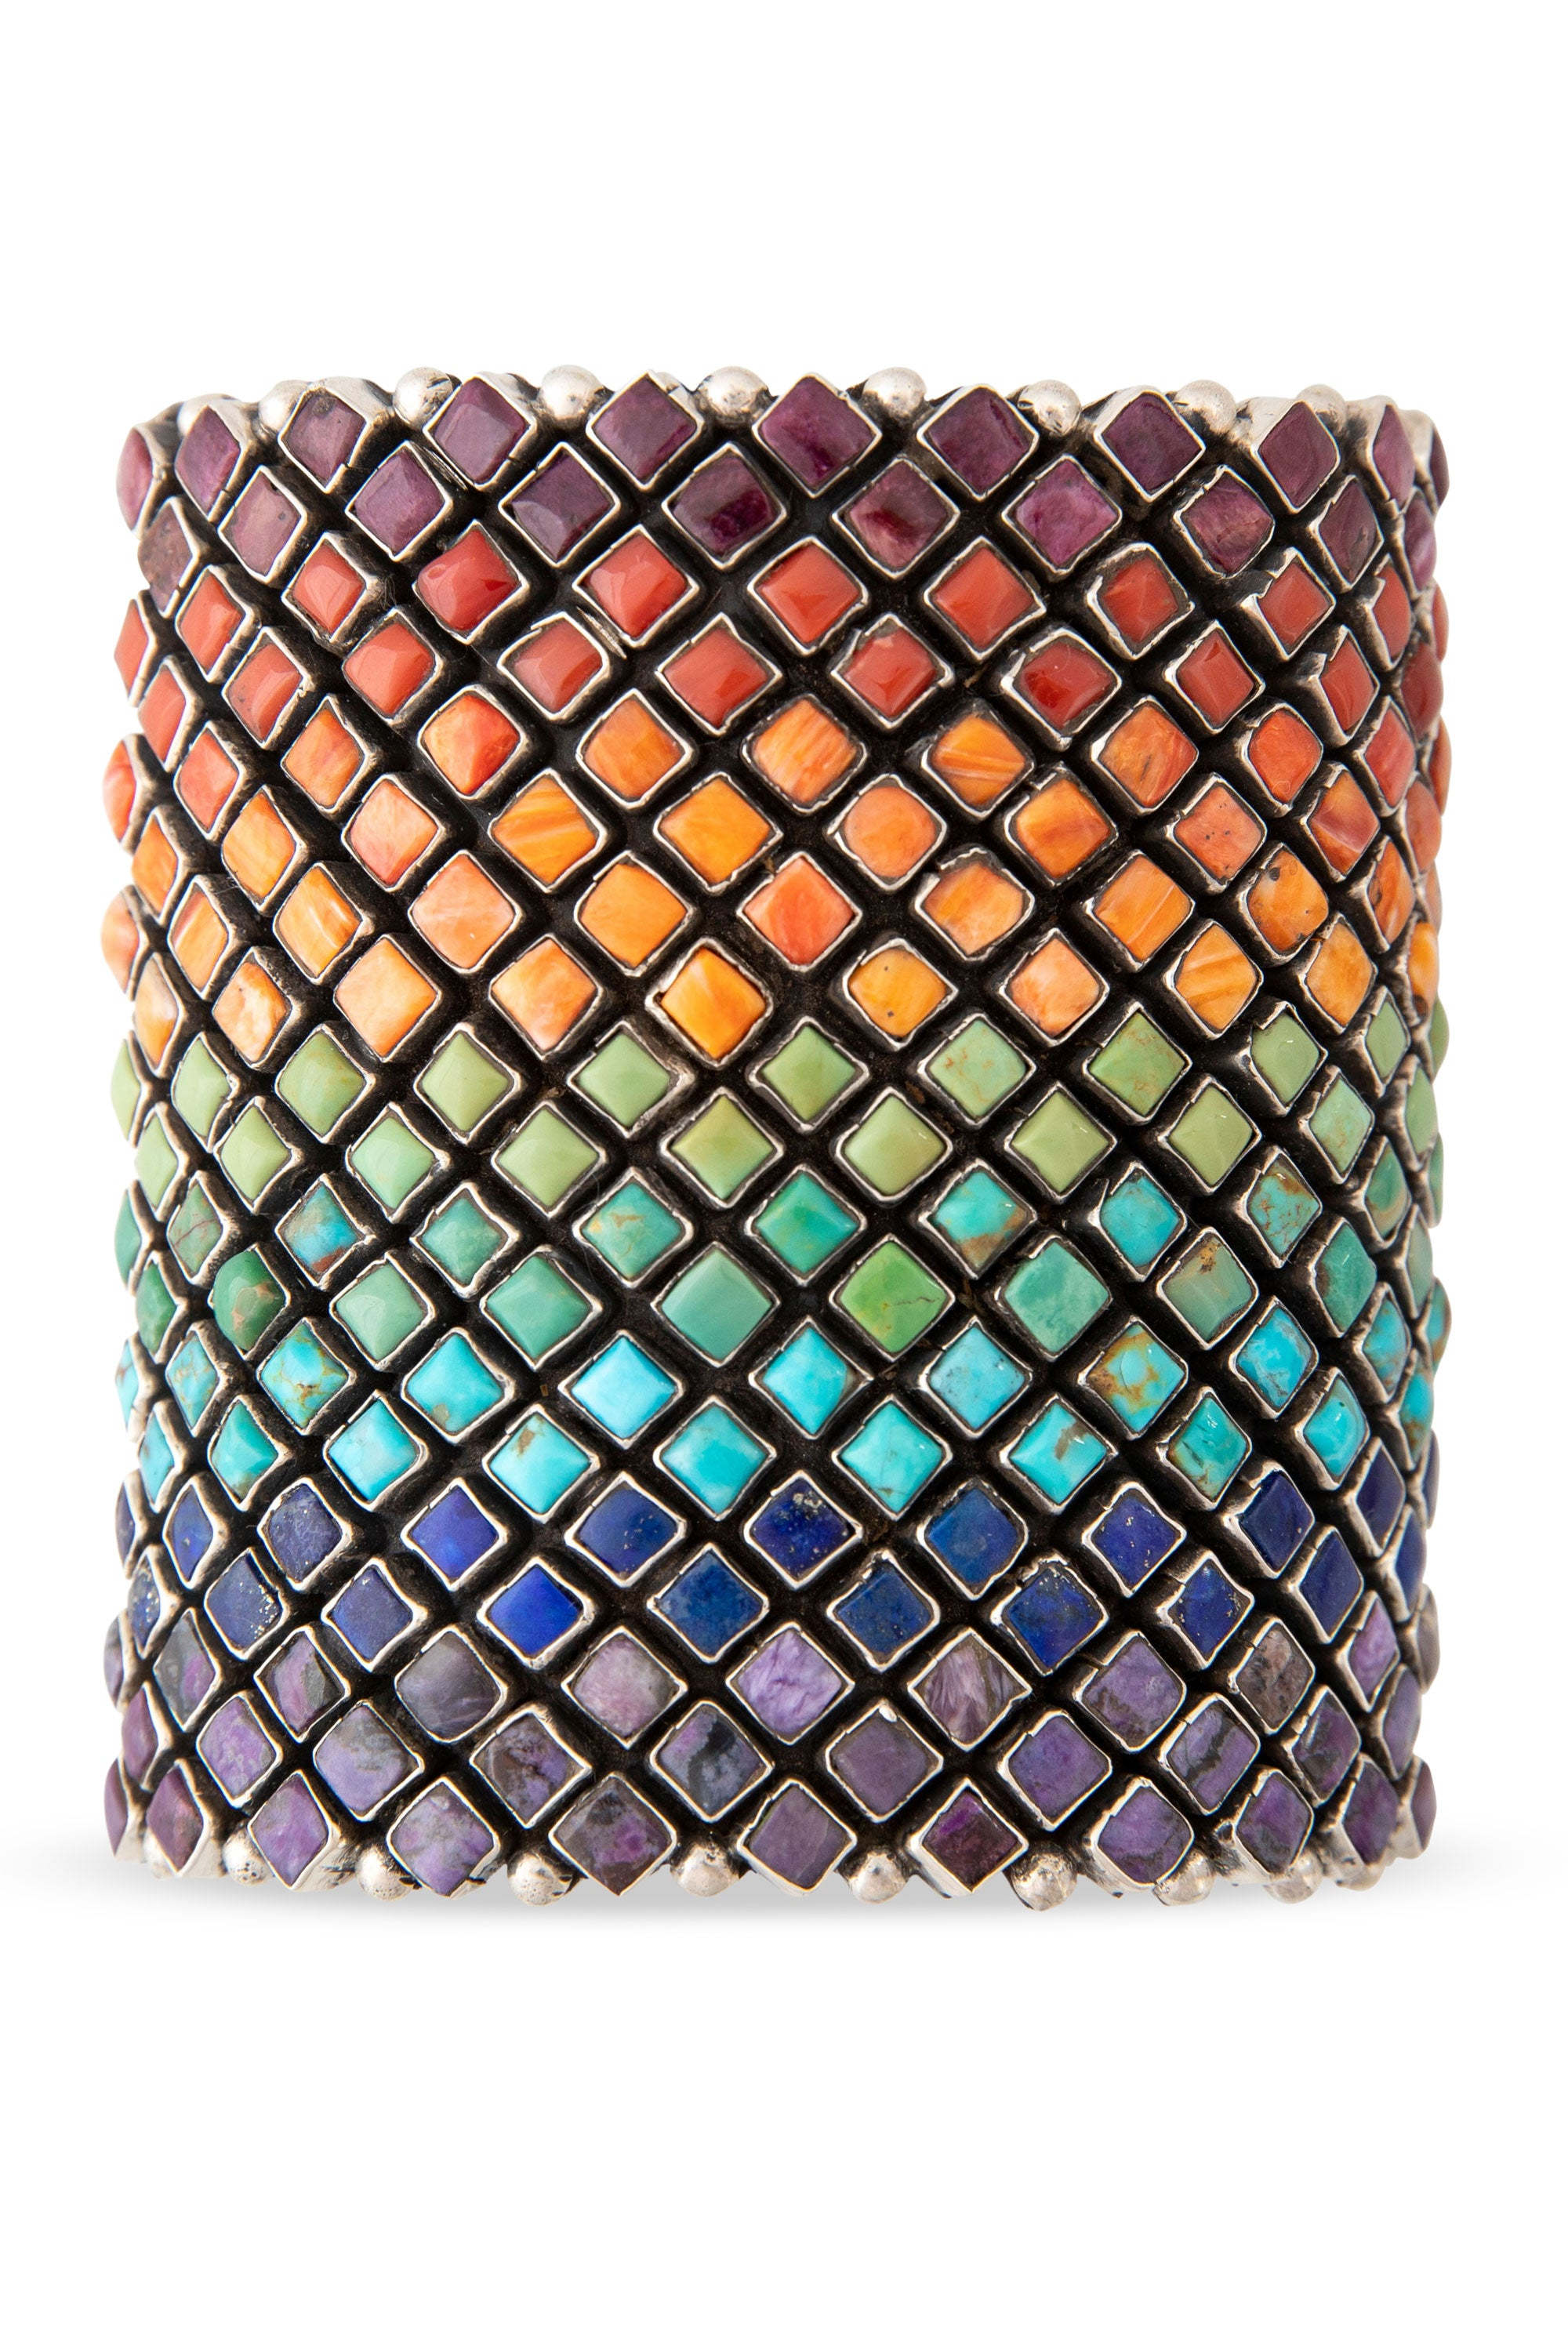 Cuff, Diamond Row, Multi Stone, Hallmark, 2392